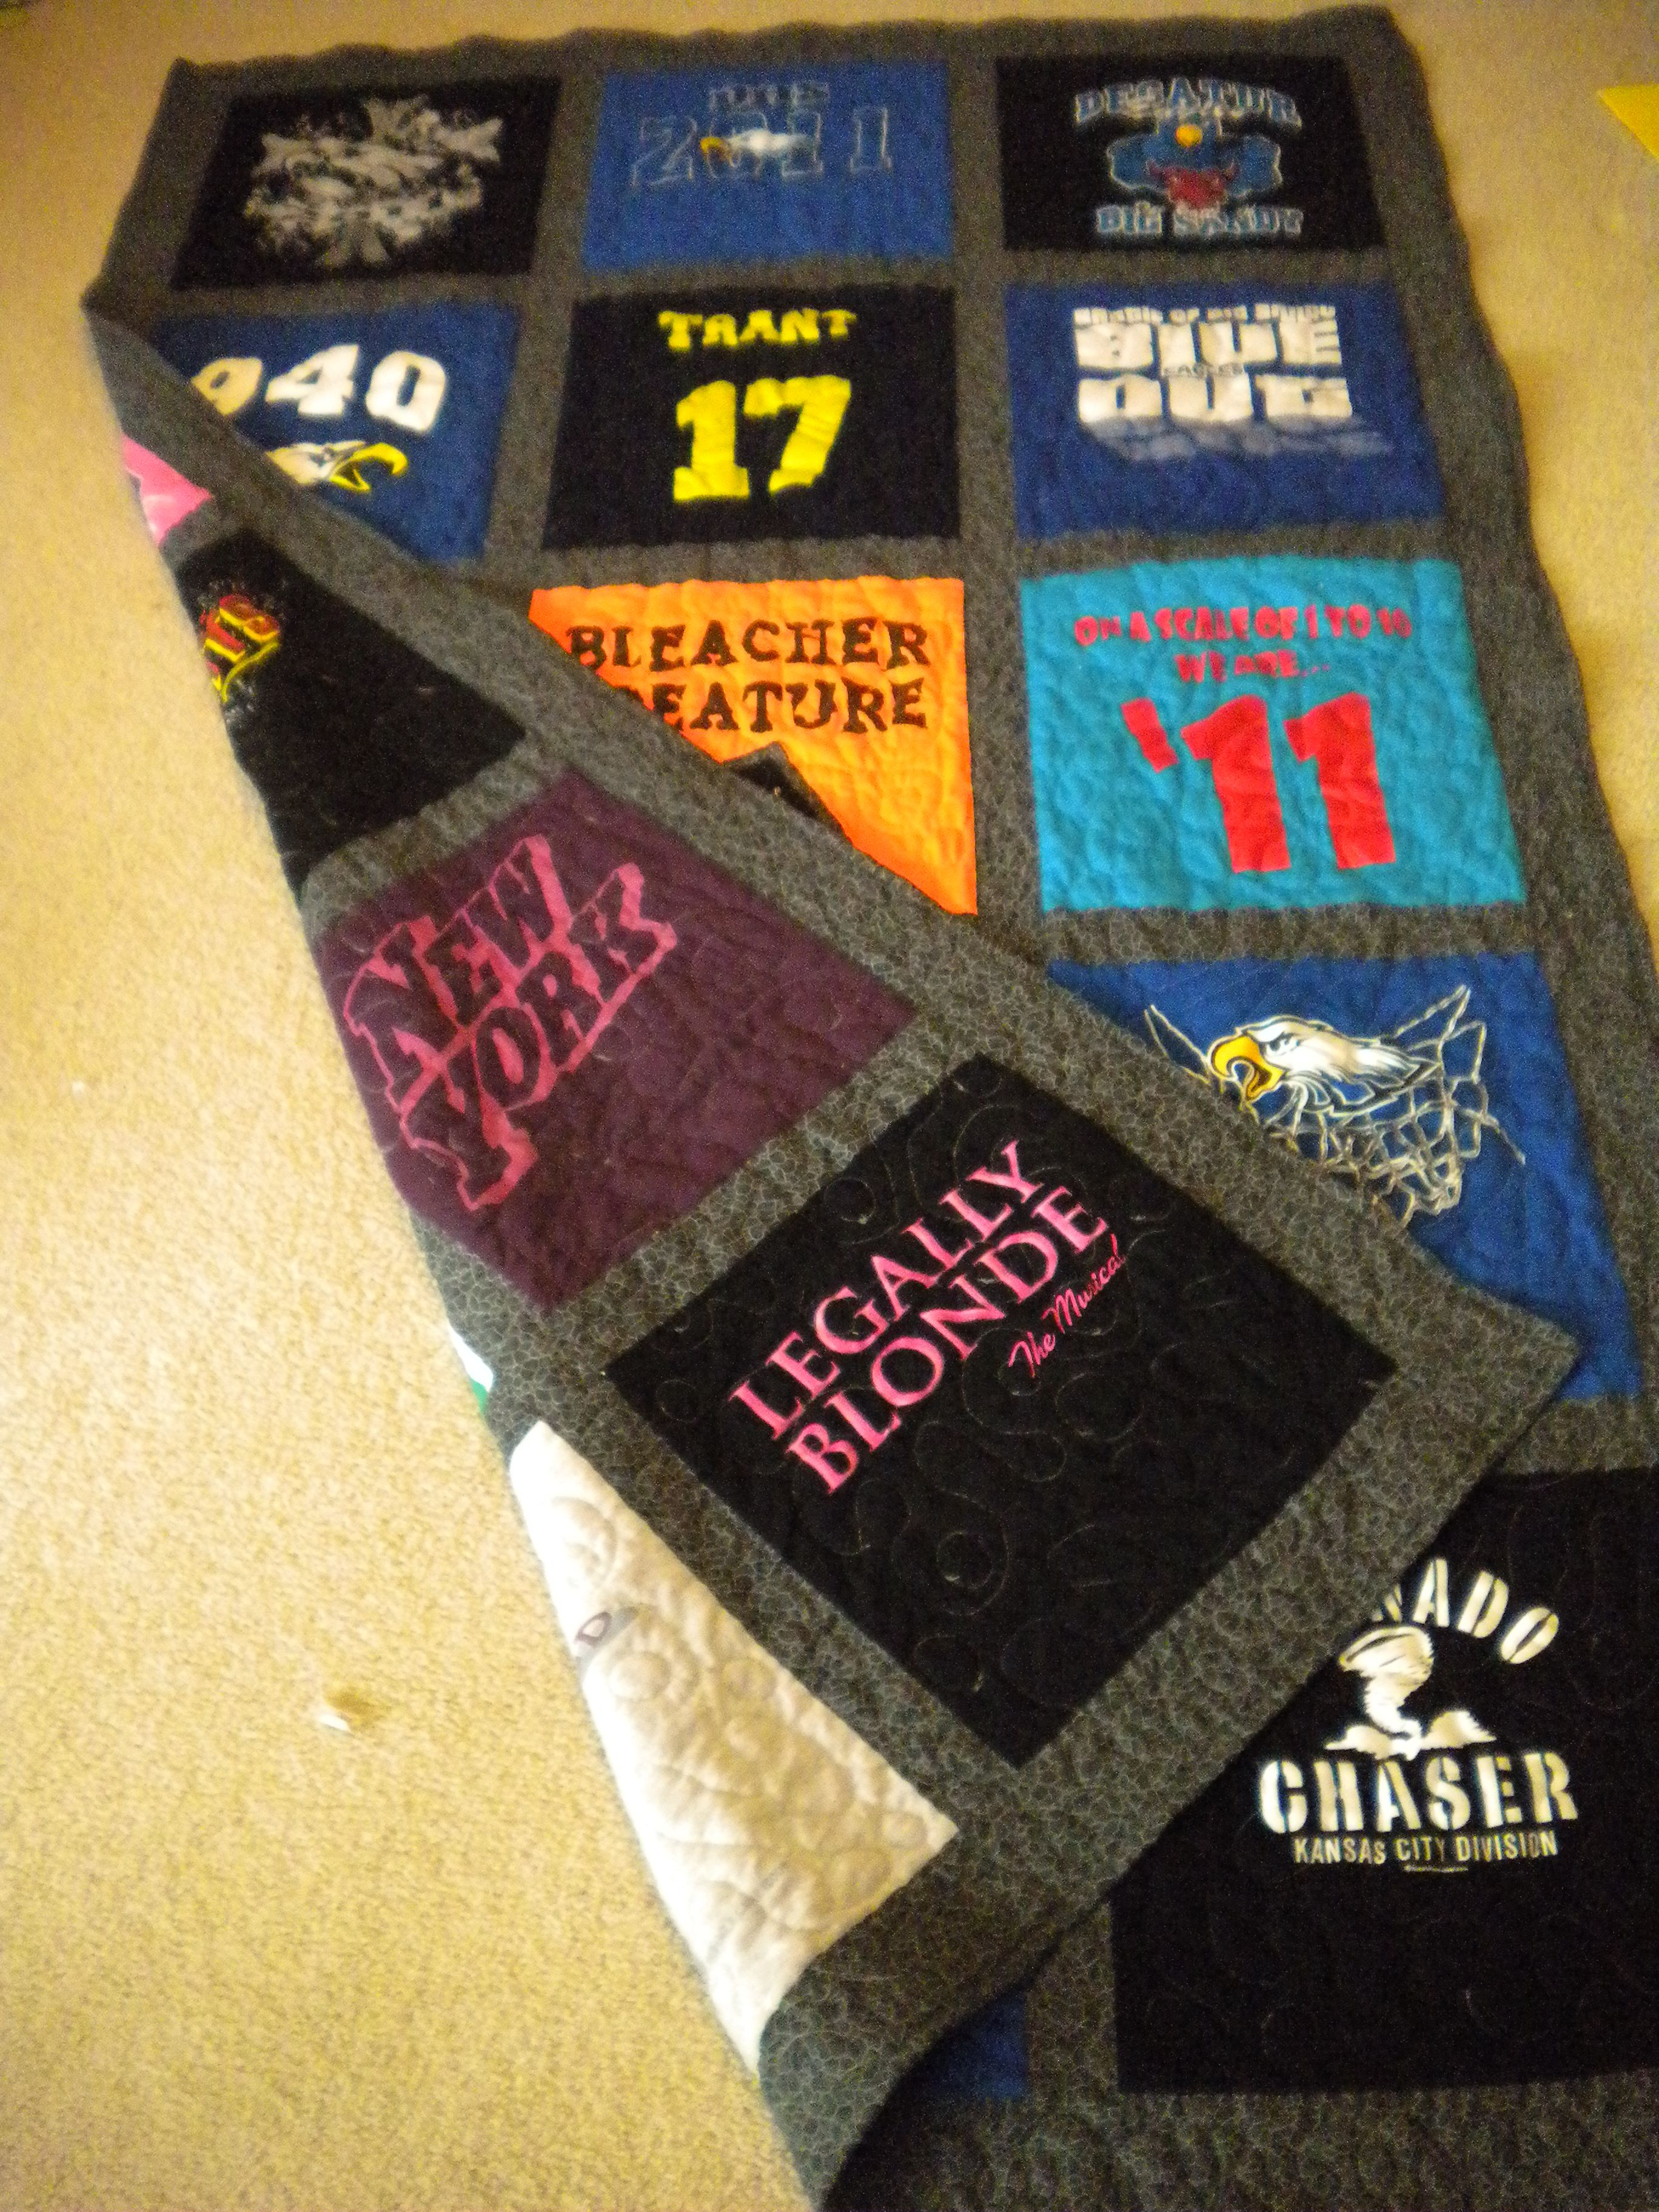 Black quilted t shirt - Double Sided Tshirt Quilt Like The Look Of This One Too With The Fabric In